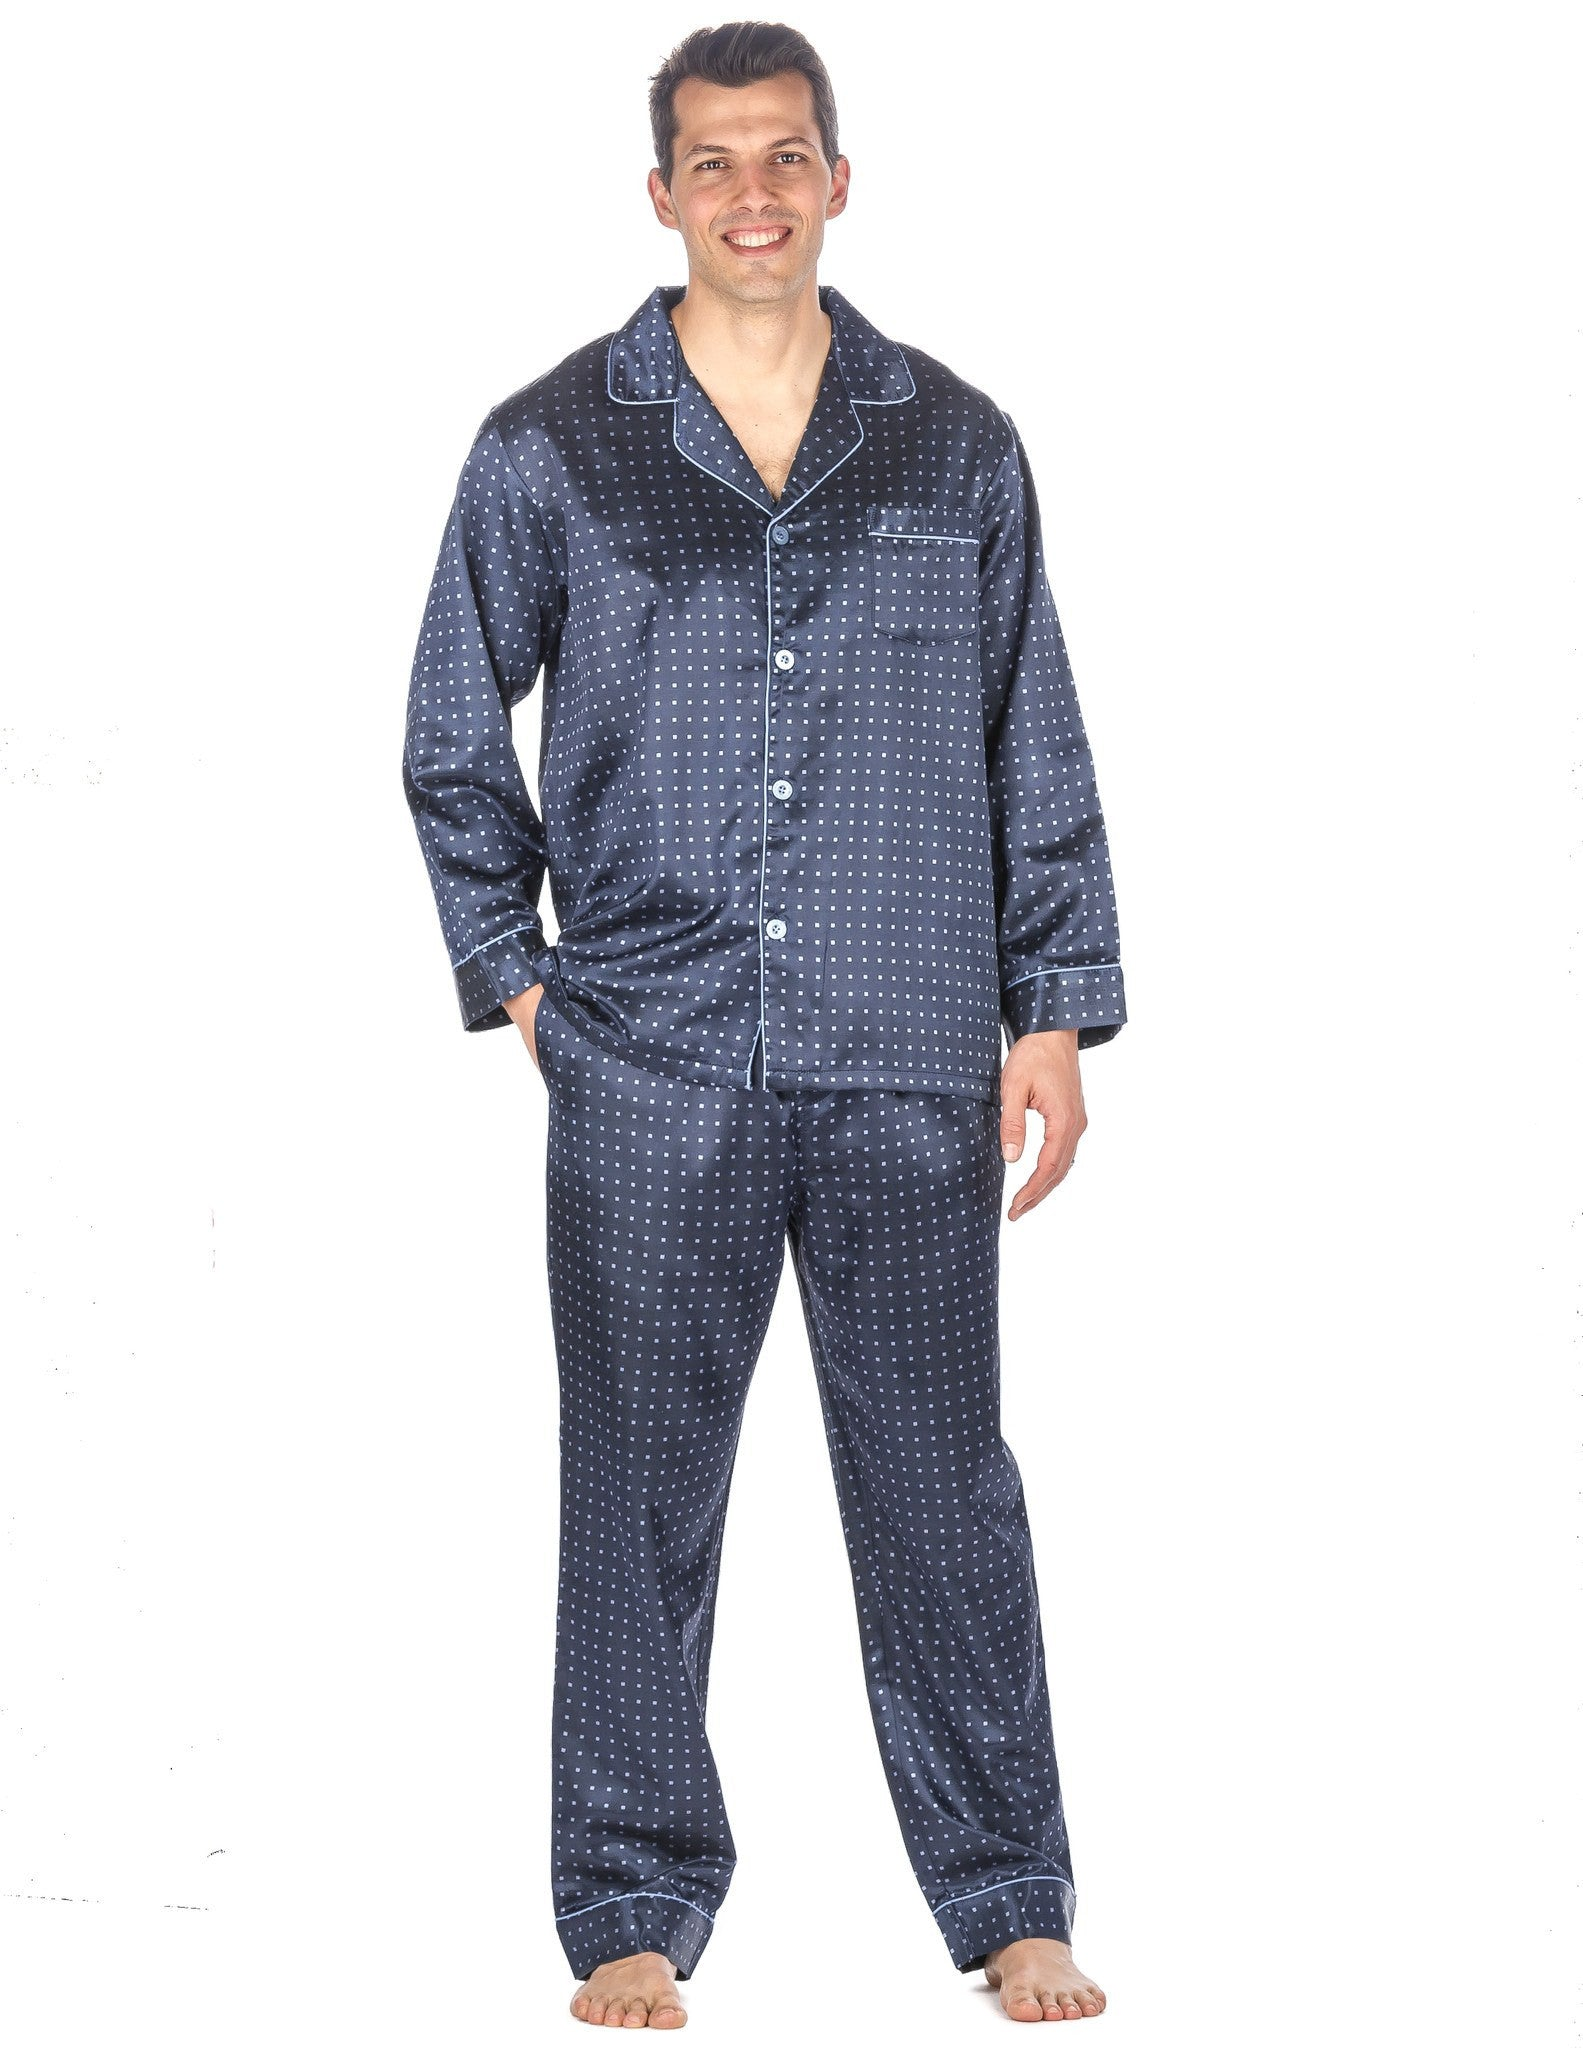 Mens Pajama Sets Golden slumbers are well within reach with help from men's pajama sets. These appealing sleepwear ideas emphasize comfort and style all at once.